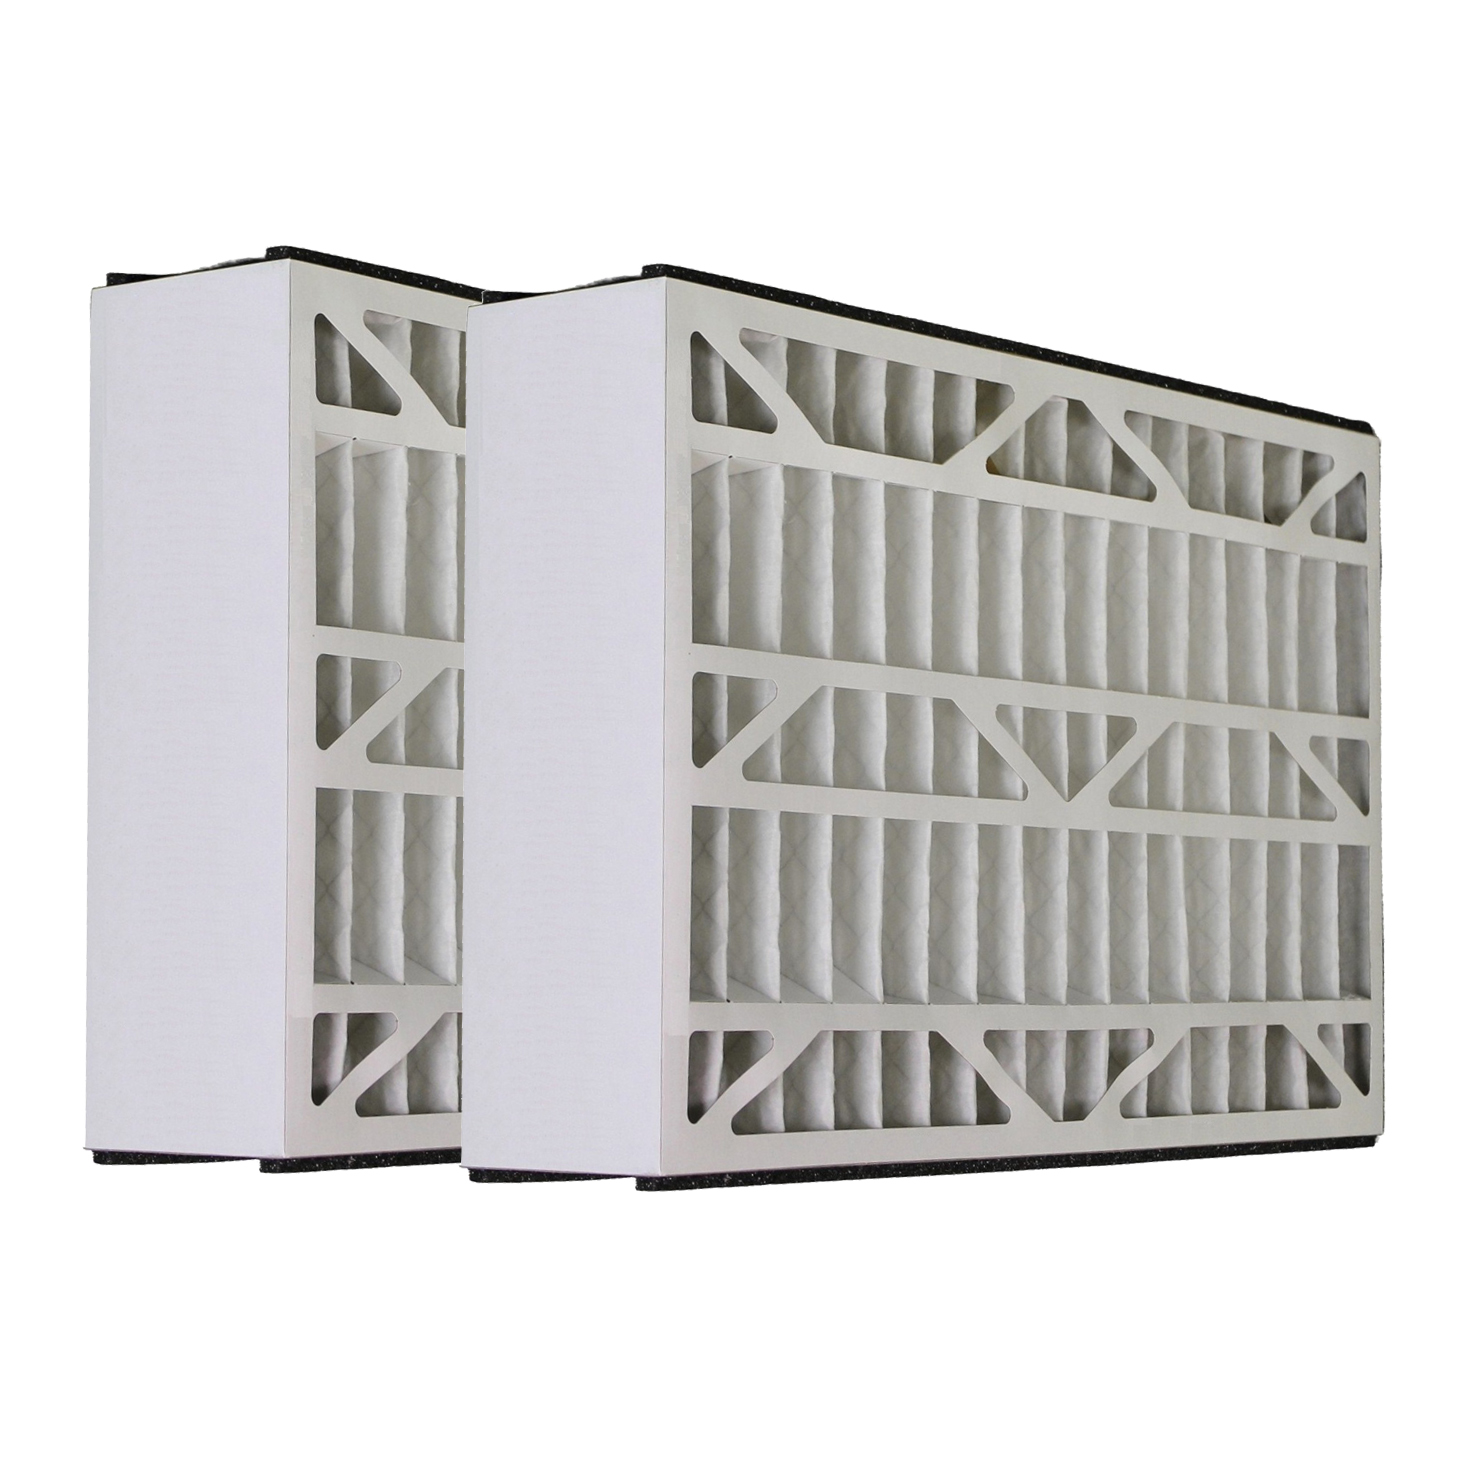 Tier1 Replacement for GeneralAire 20x25x5 Merv 13 AC Furnace Air Filter 2 Pack